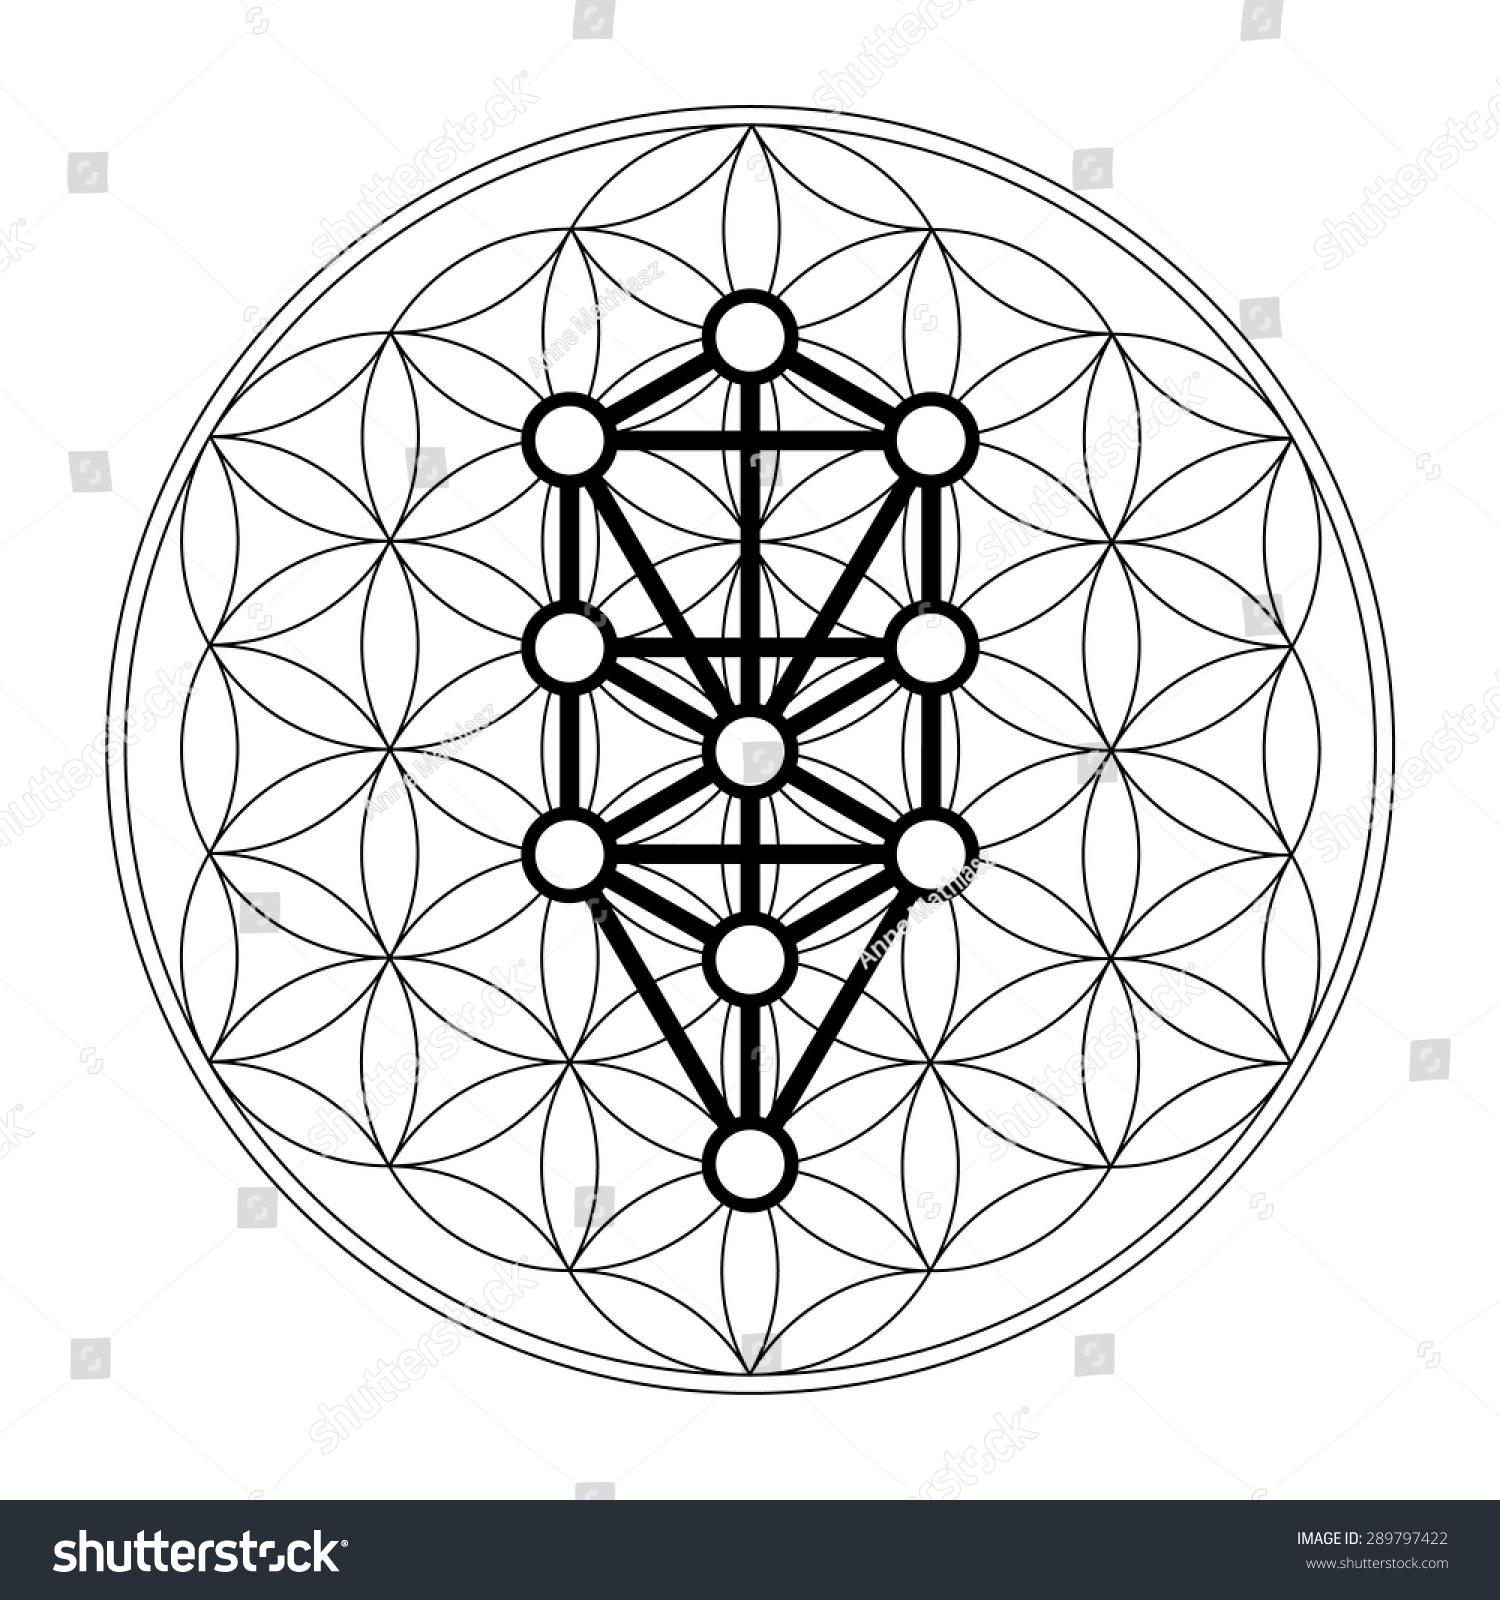 kabbalah 12 sephiroth tree of life flower of life stock vector illustration 289797422. Black Bedroom Furniture Sets. Home Design Ideas